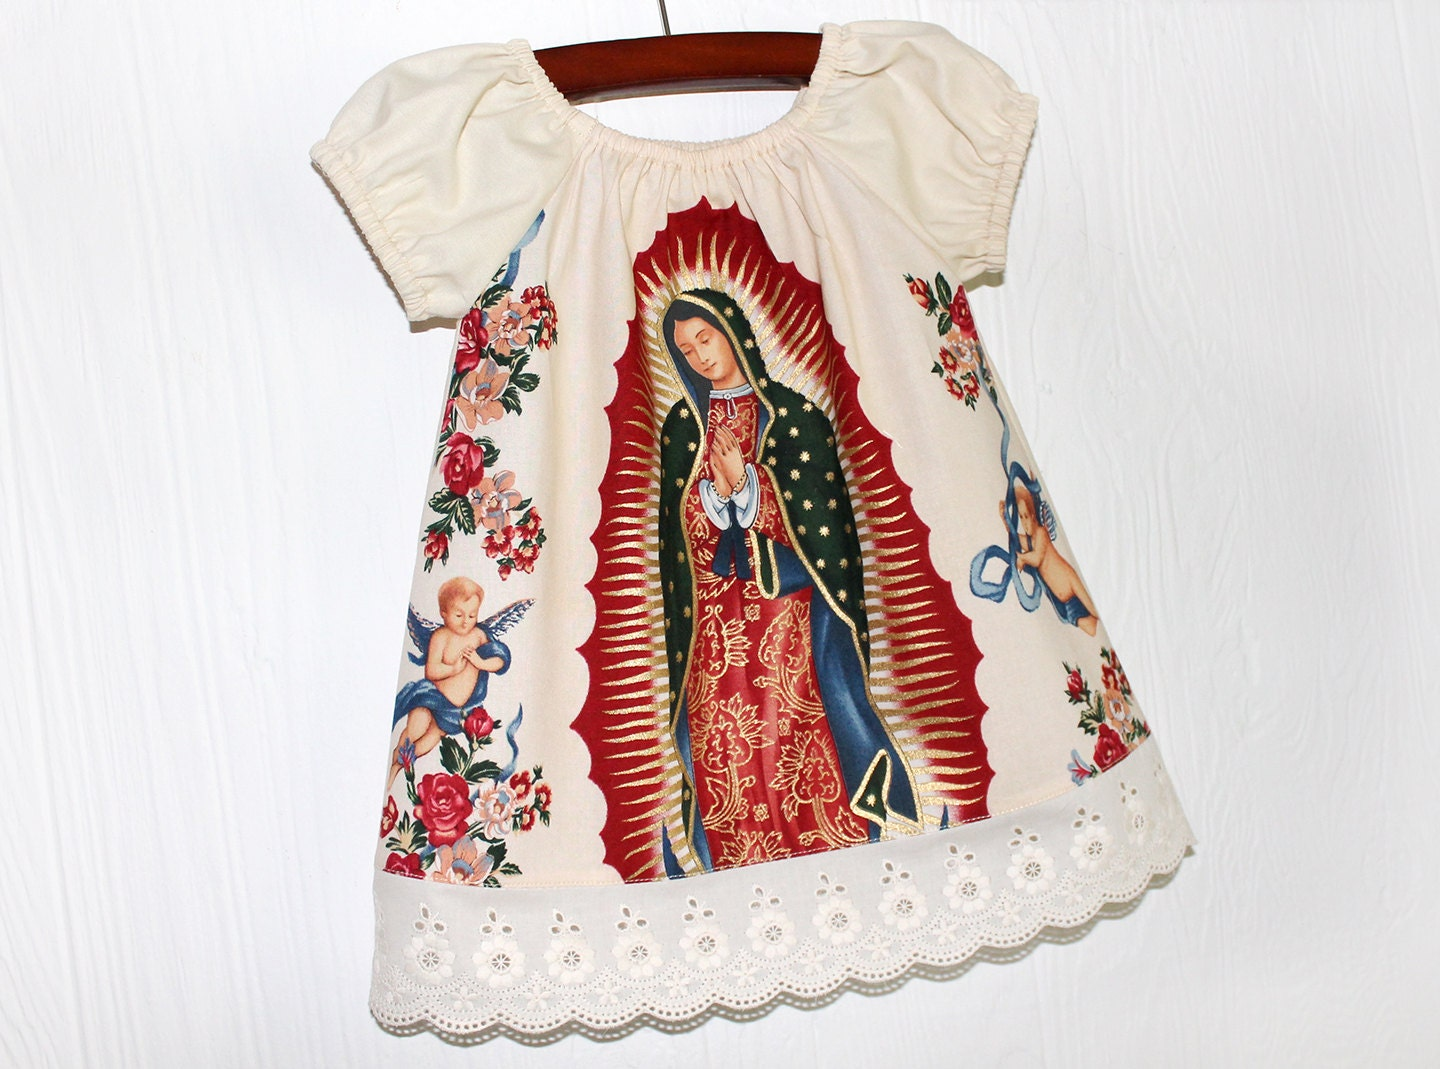 Our Lady of Guadalupe Mexican baby dress